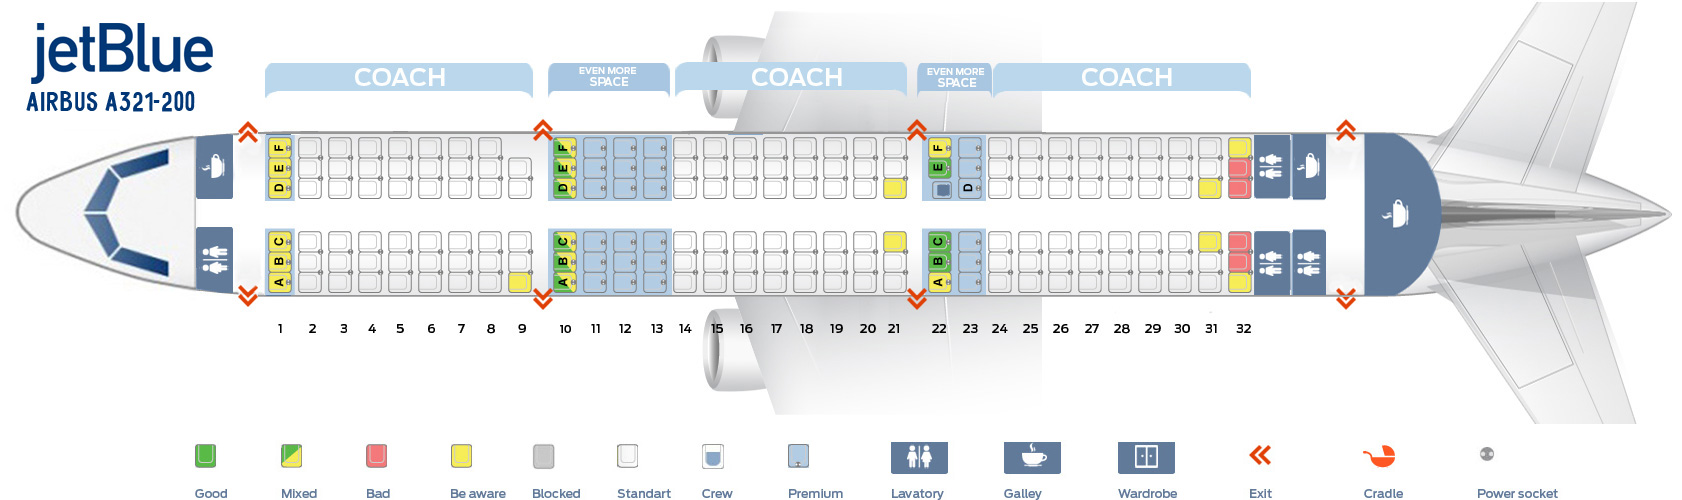 Jetblue A320 Seat Map Seat map Airbus A321 200